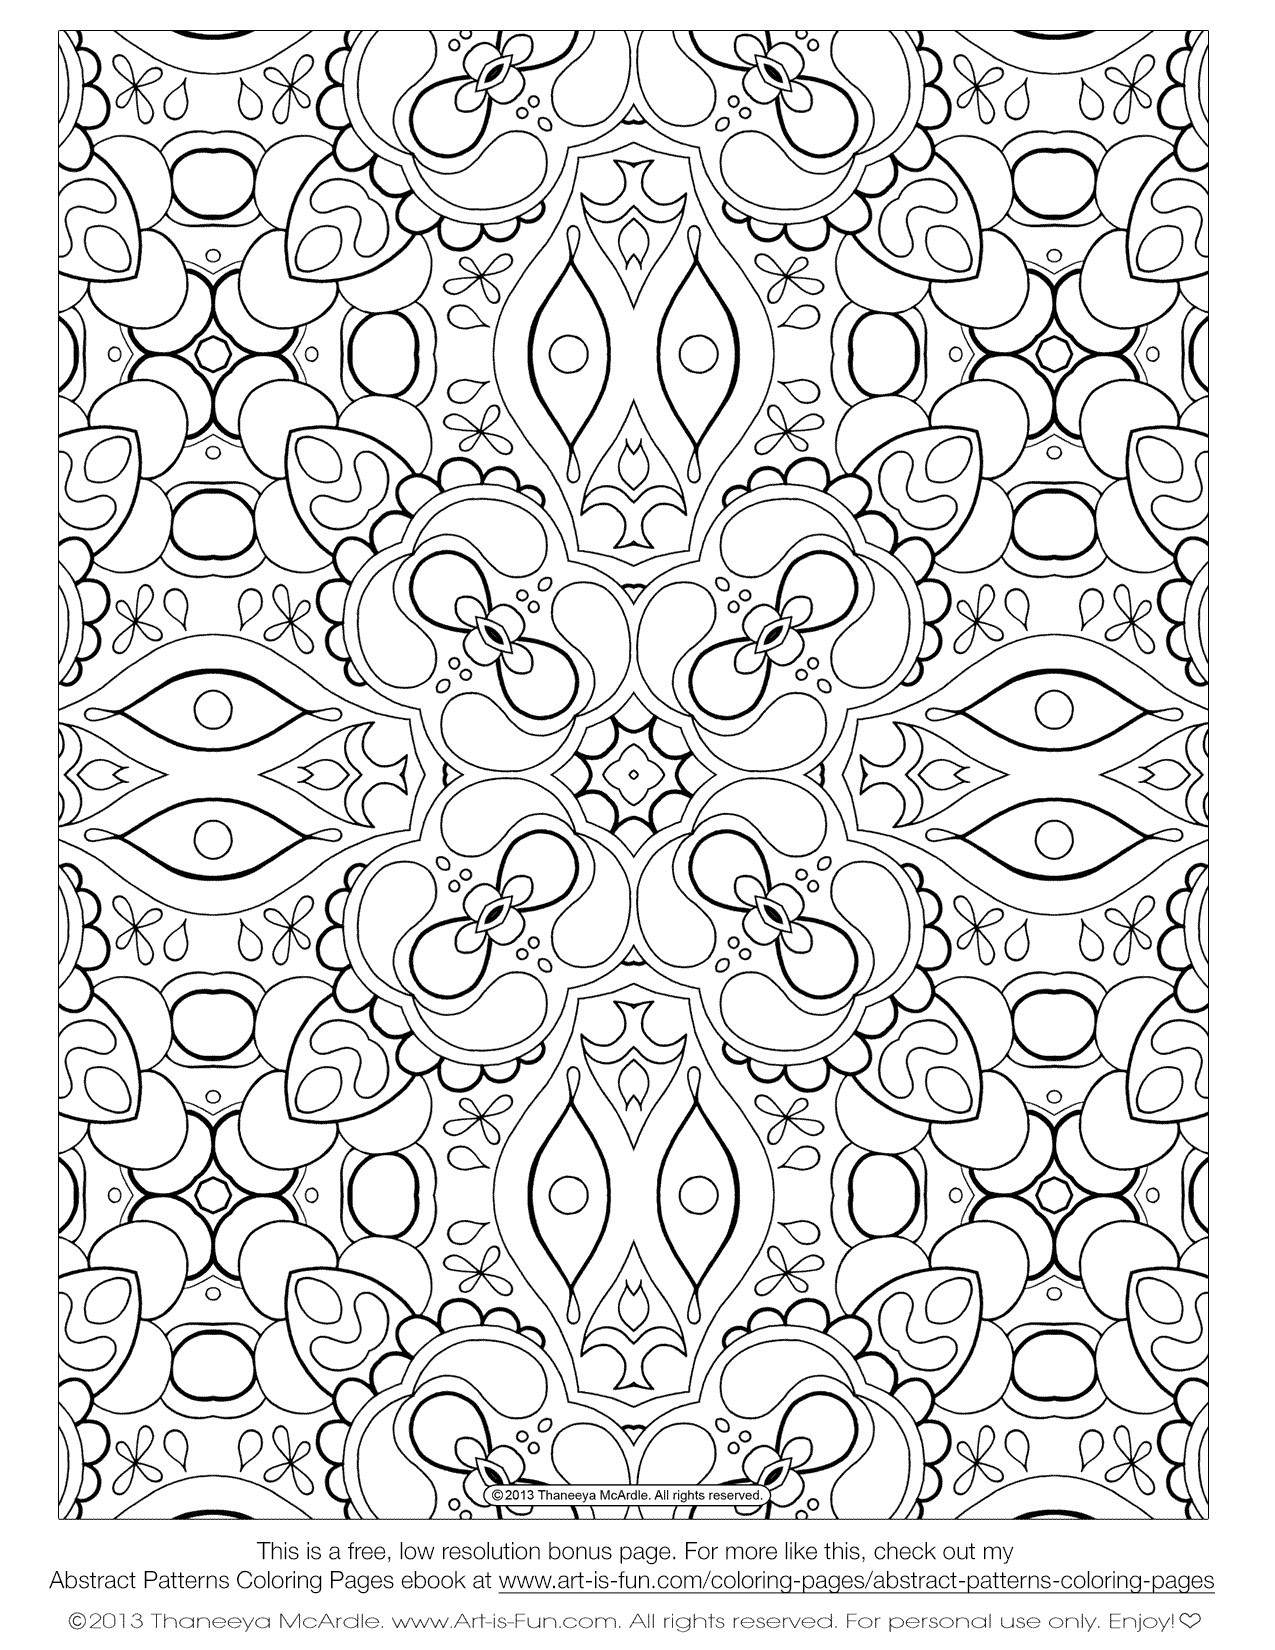 photo regarding Free Winter Coloring Pages Printable referred to as Totally free Winter season Coloring Web pages Coloring Internet pages Wintertime Coloring